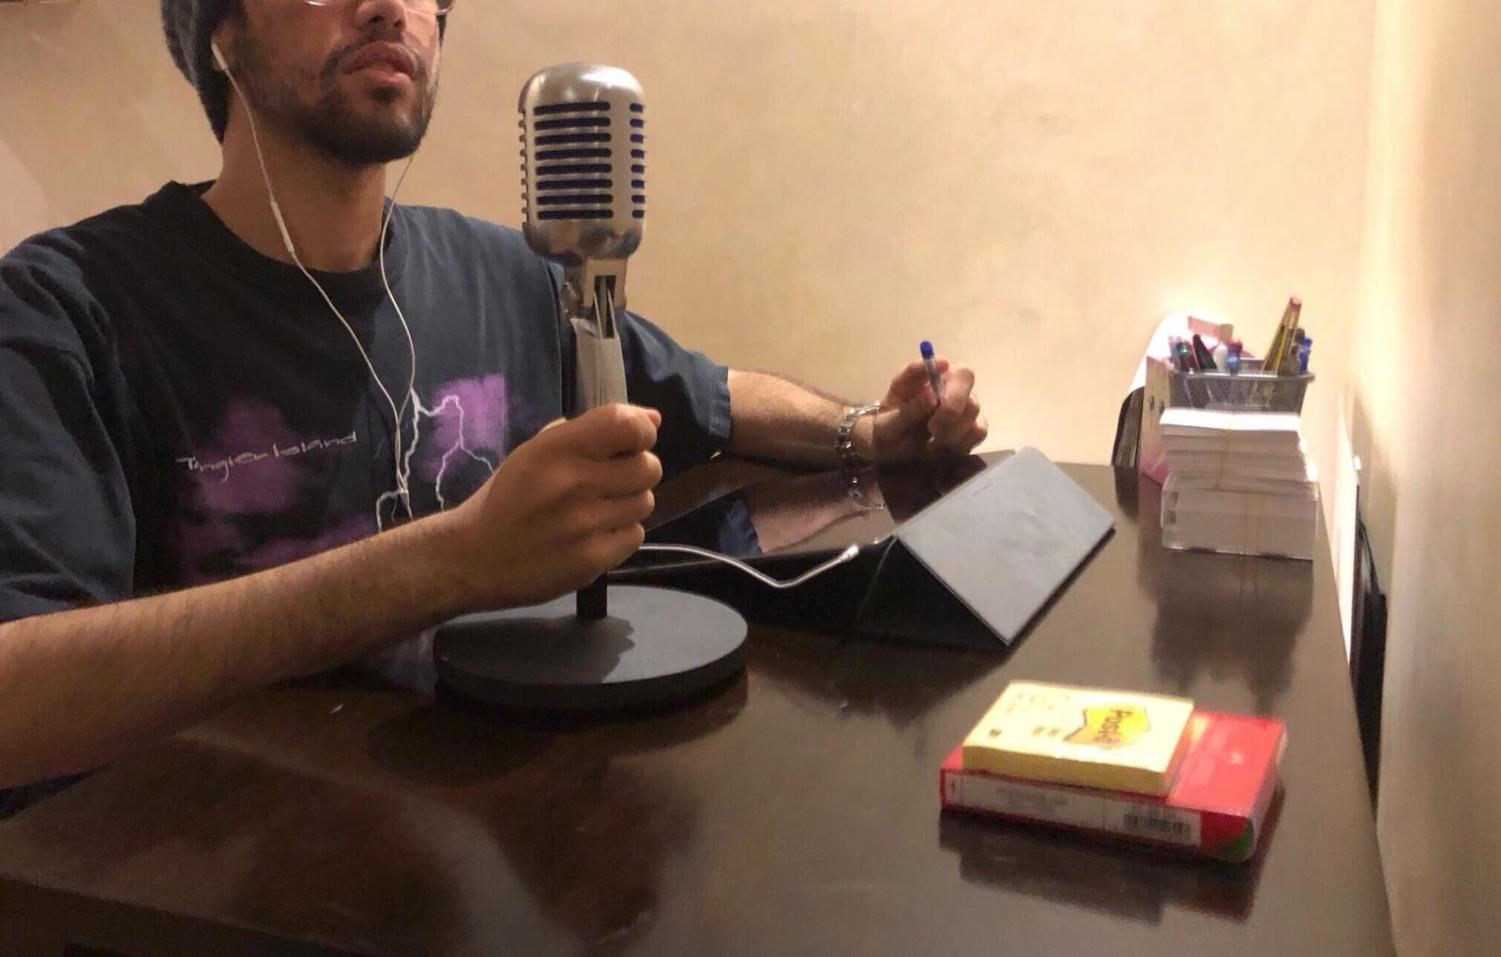 Hamad AlFayhani recording an episode for his podcast,